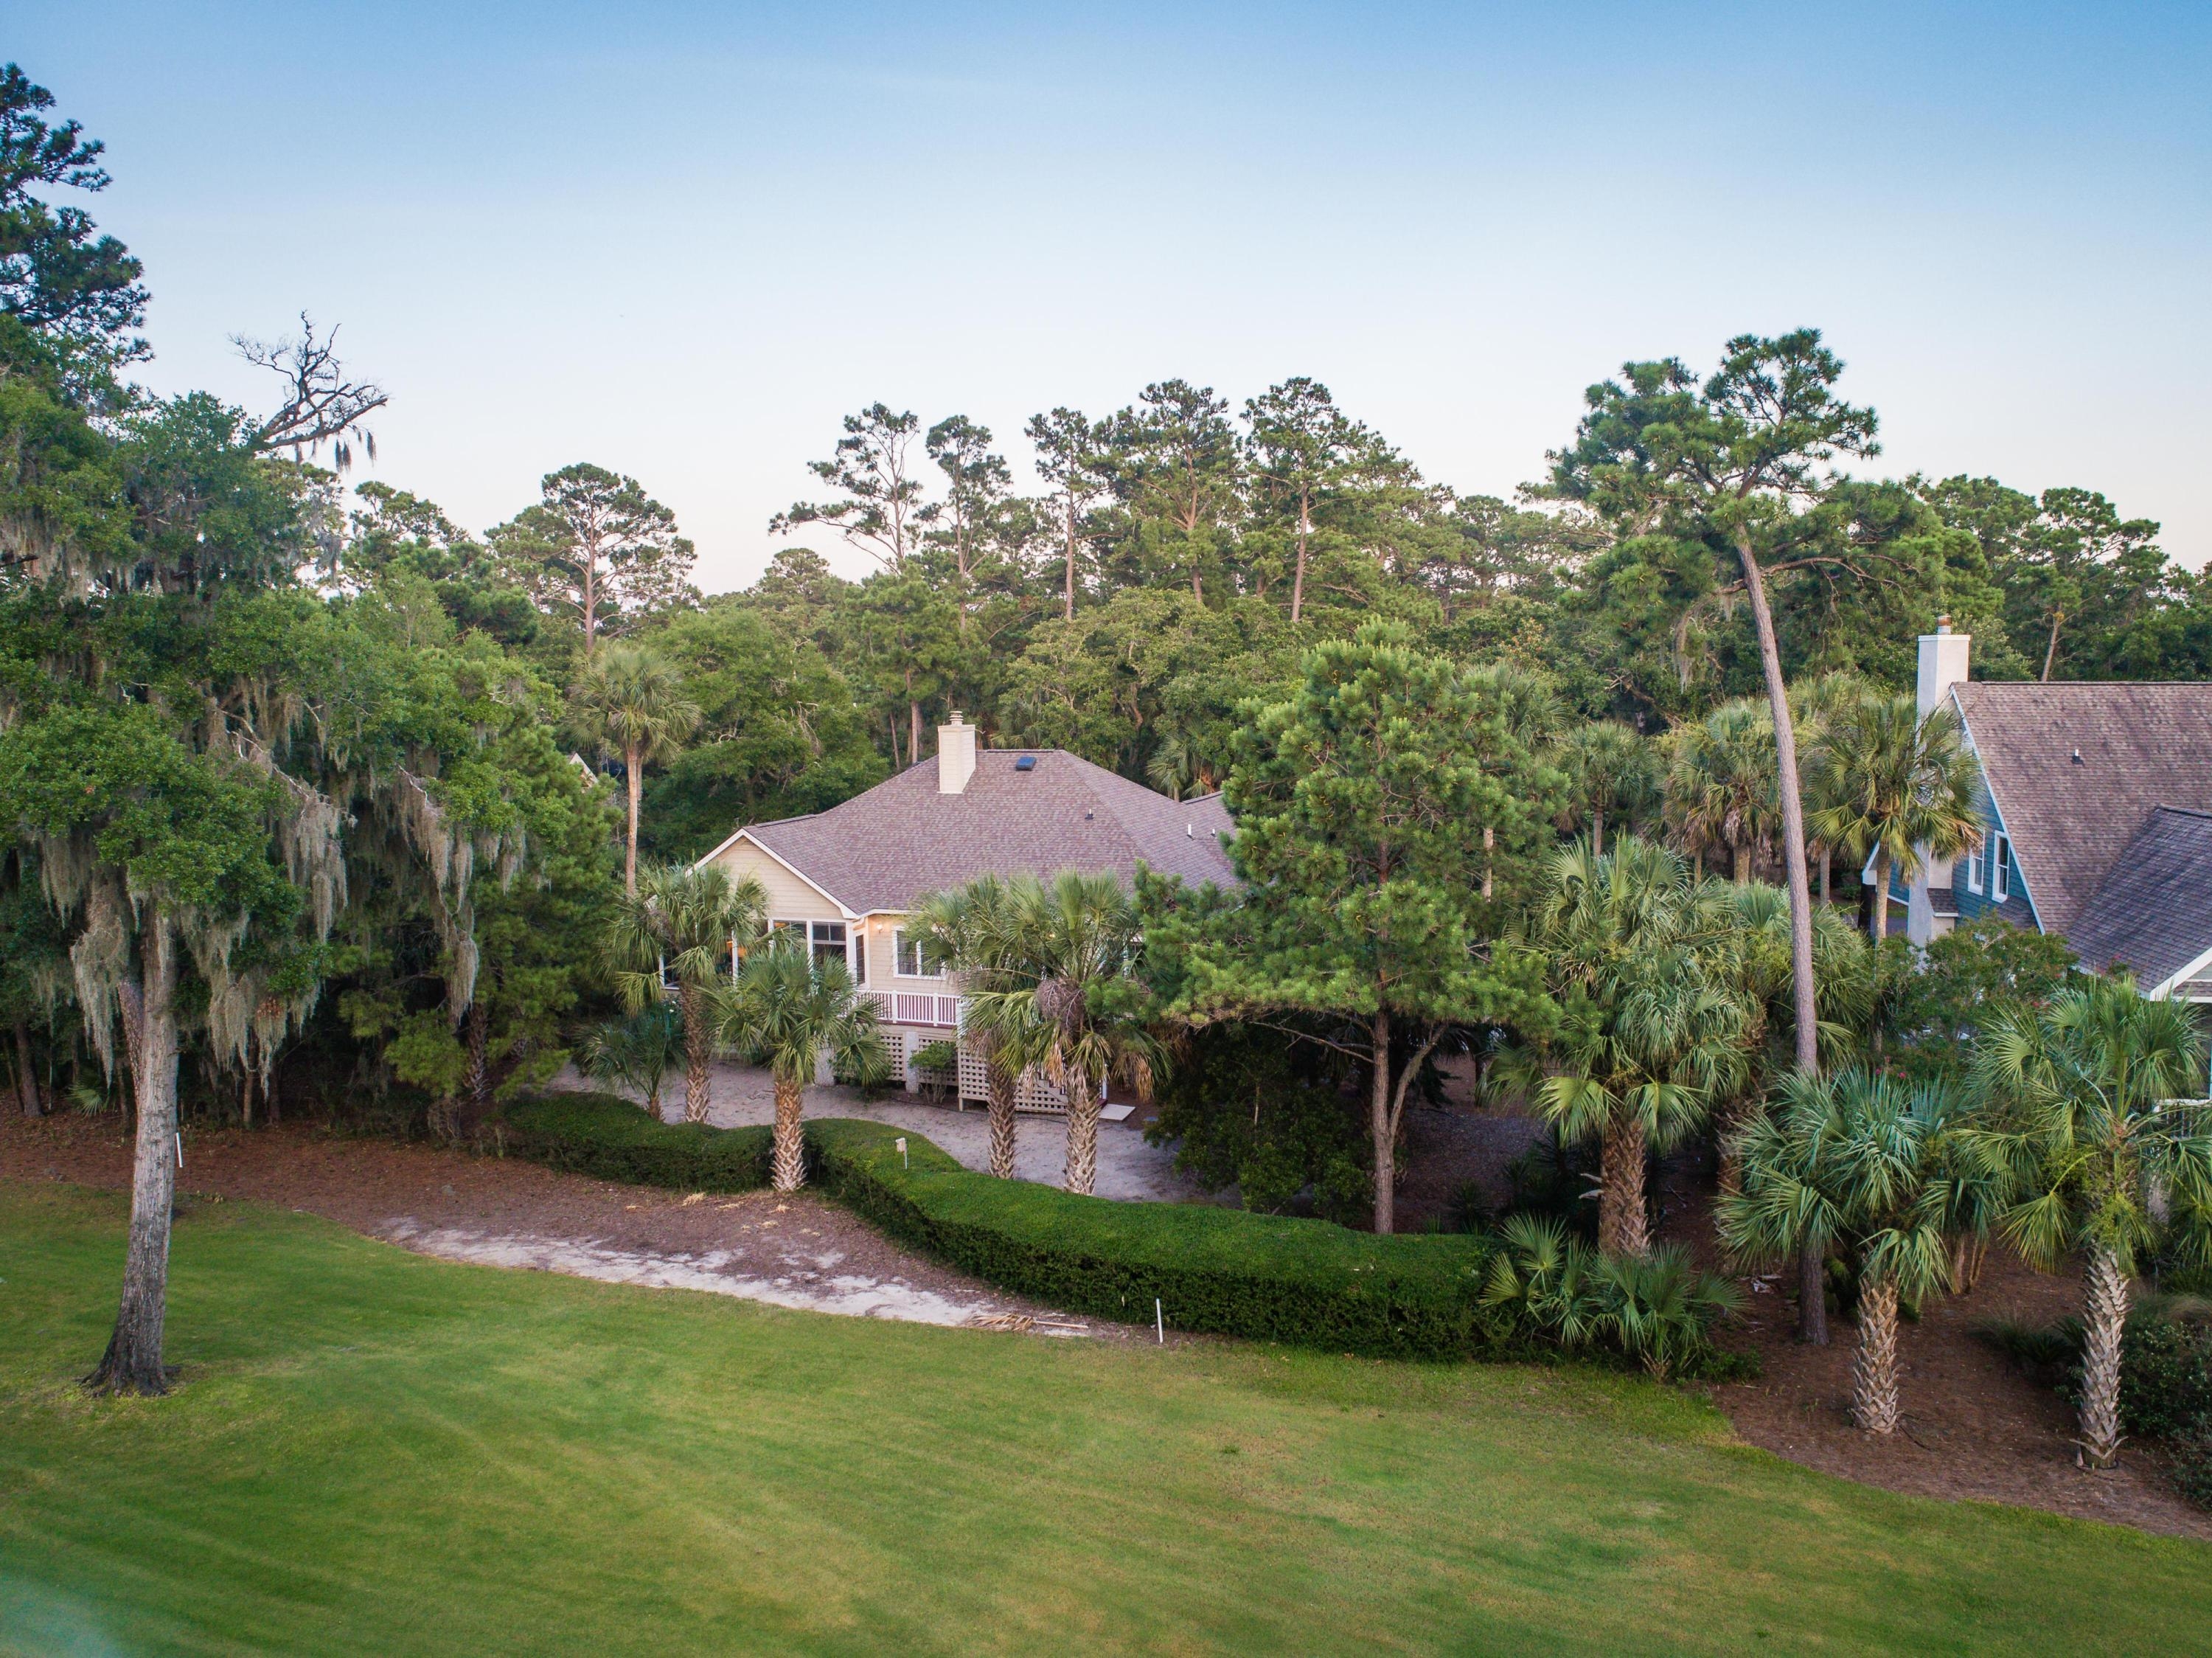 Seabrook Island Homes For Sale - 2470 Cat Tail Pond, Seabrook Island, SC - 44